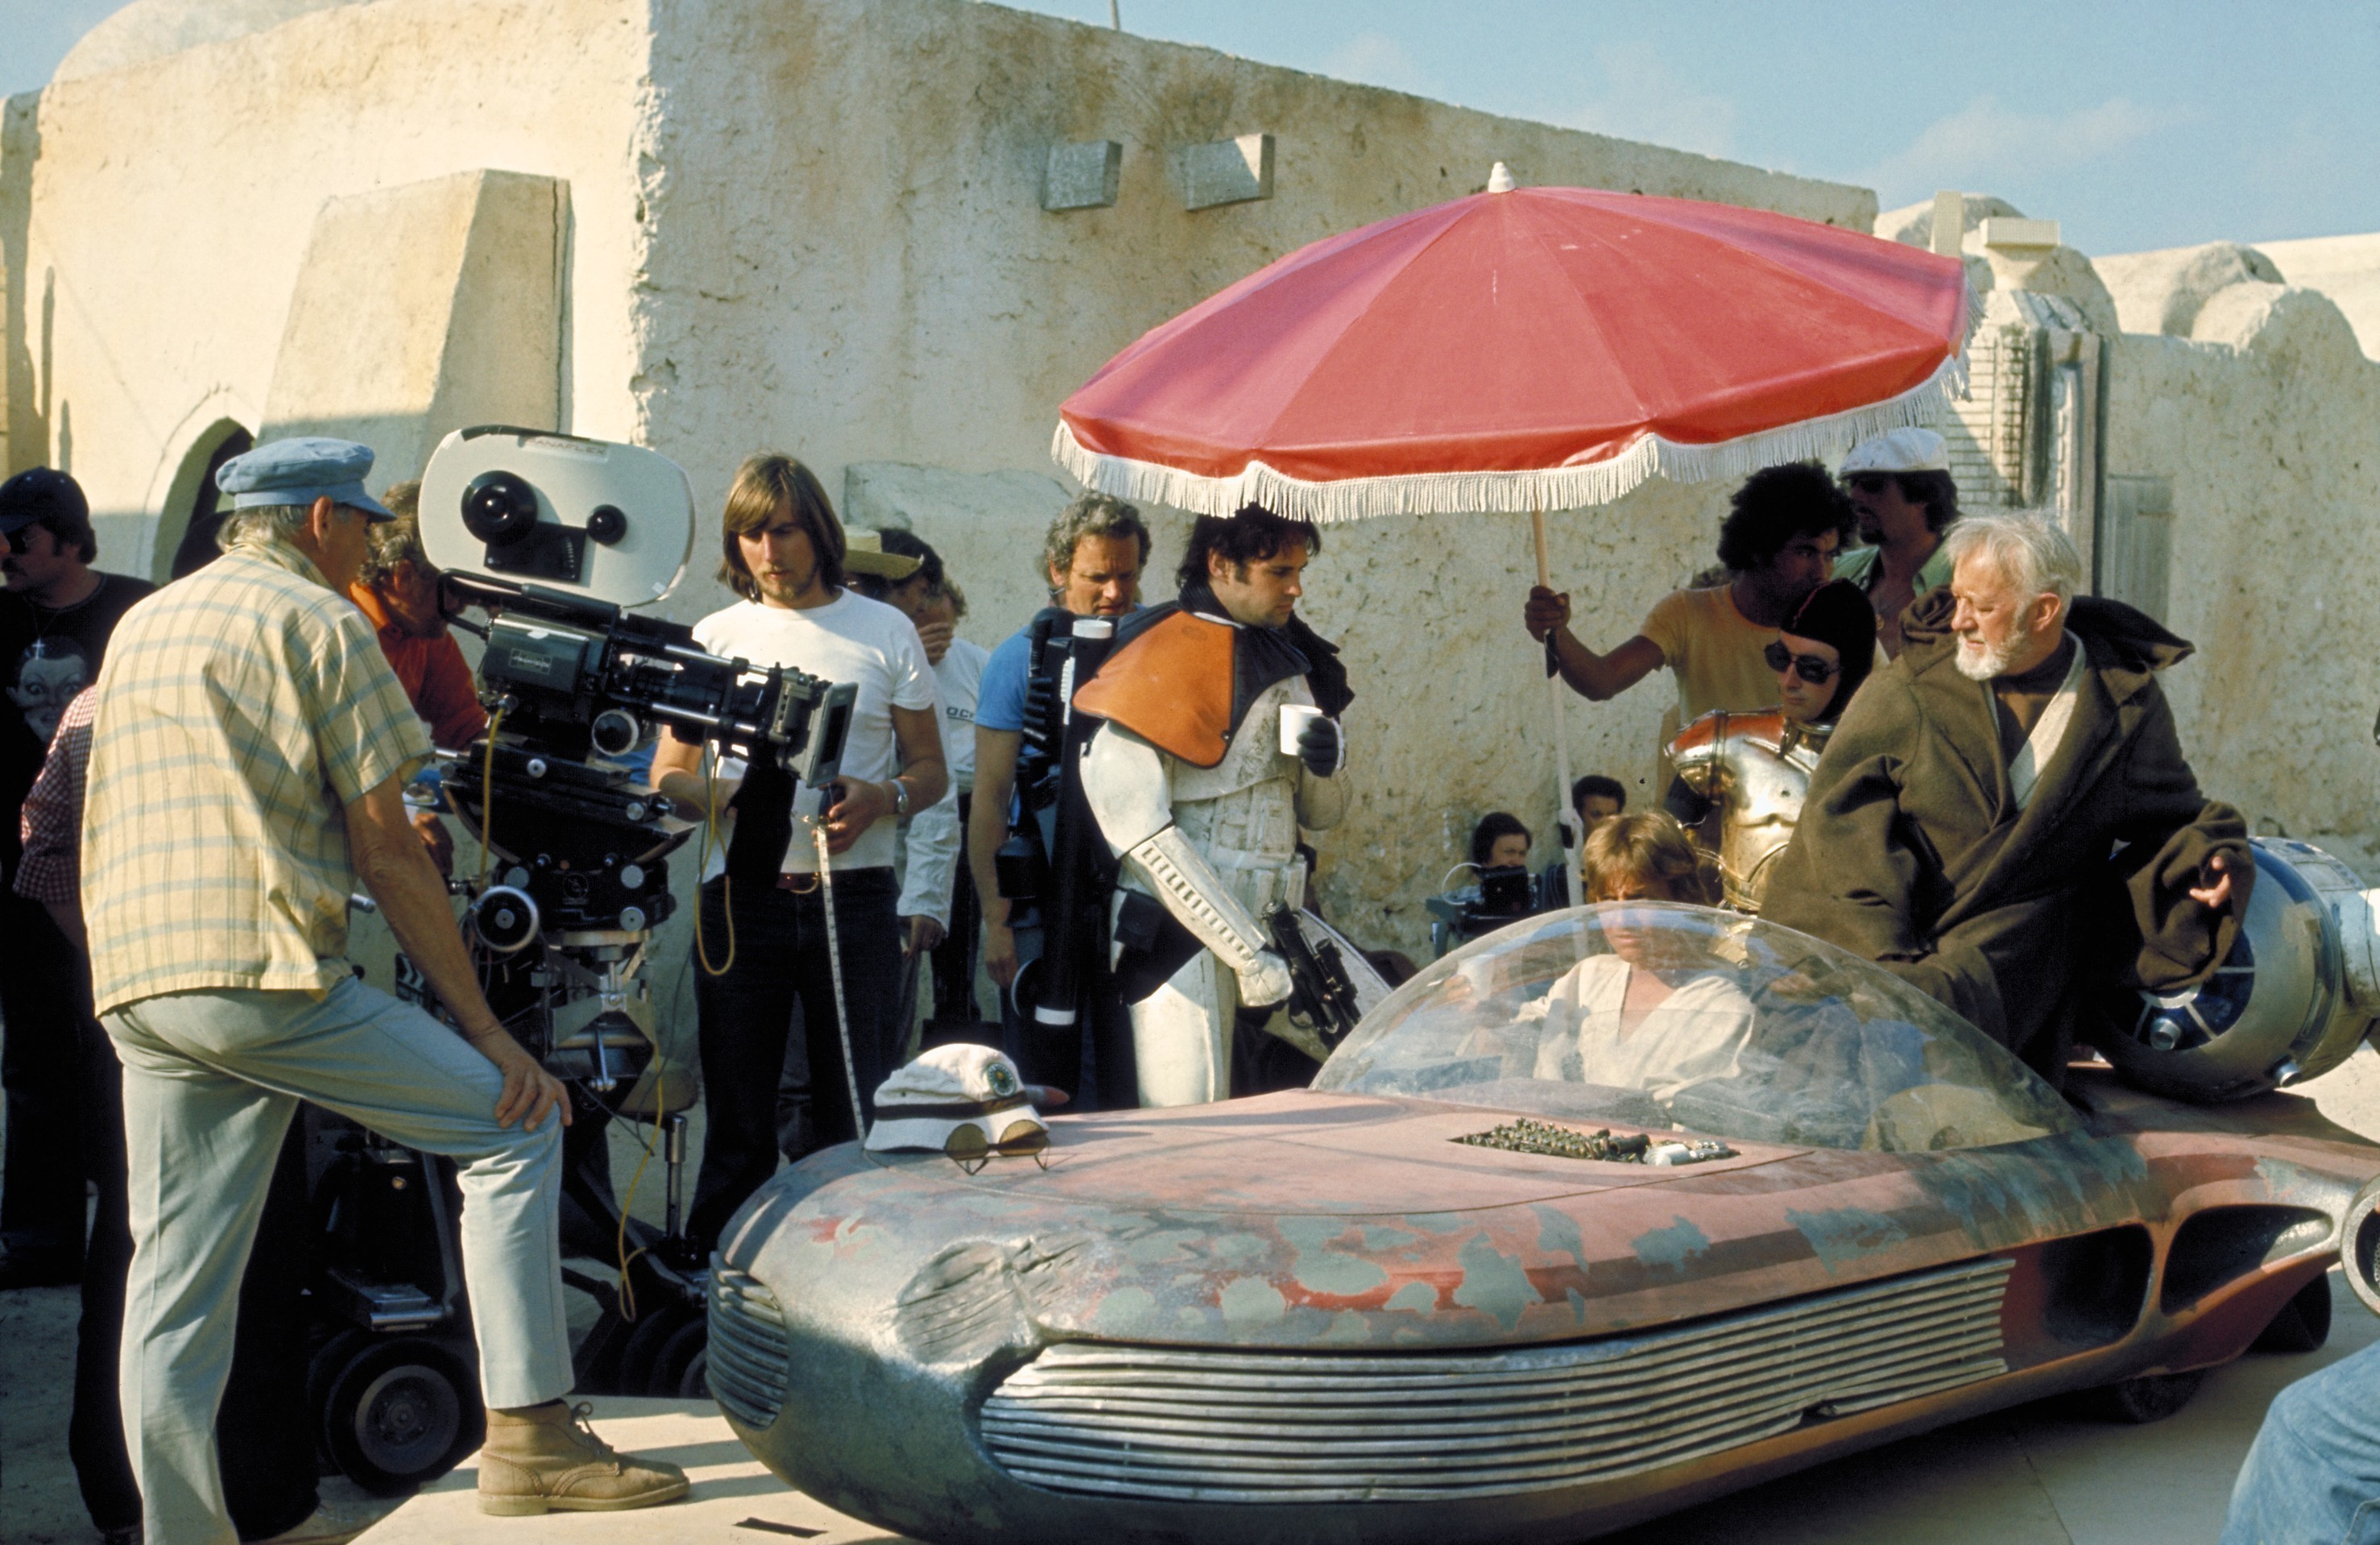 Star Wars 1977 - Behind the Scenes